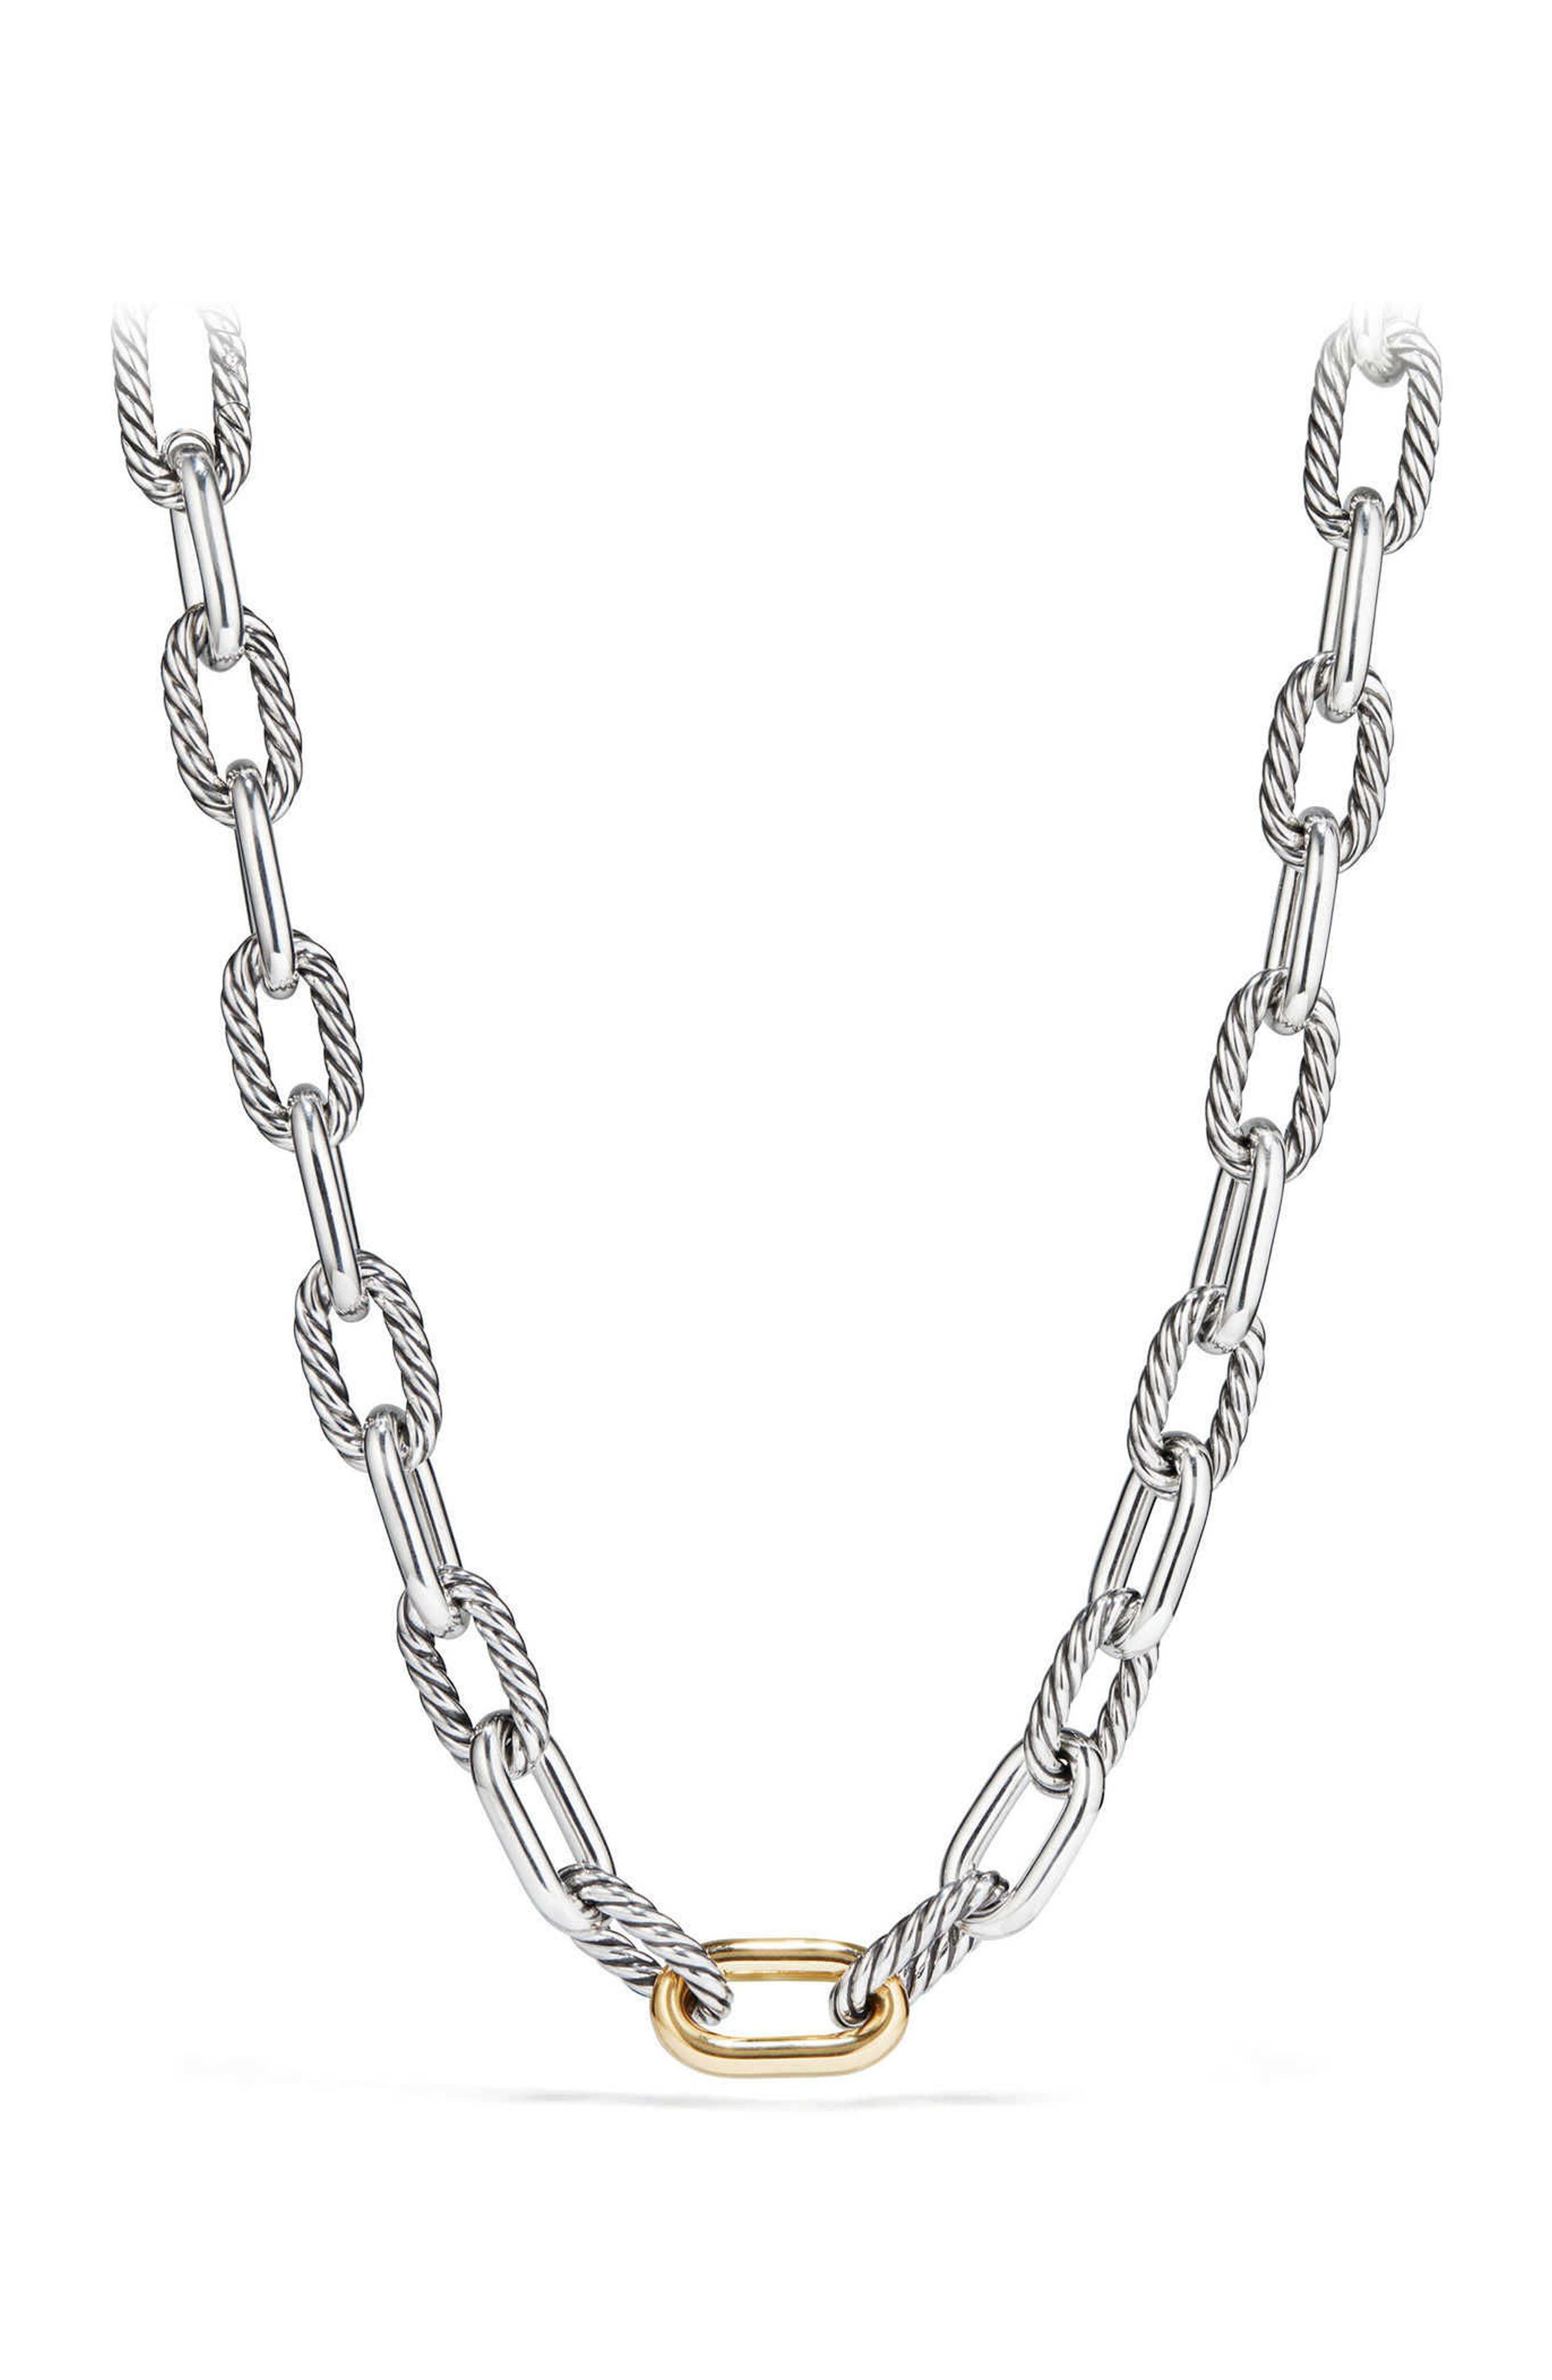 DY Madison Chain Large Necklace with 18K Gold,                             Main thumbnail 1, color,                             SILVER/ GOLD